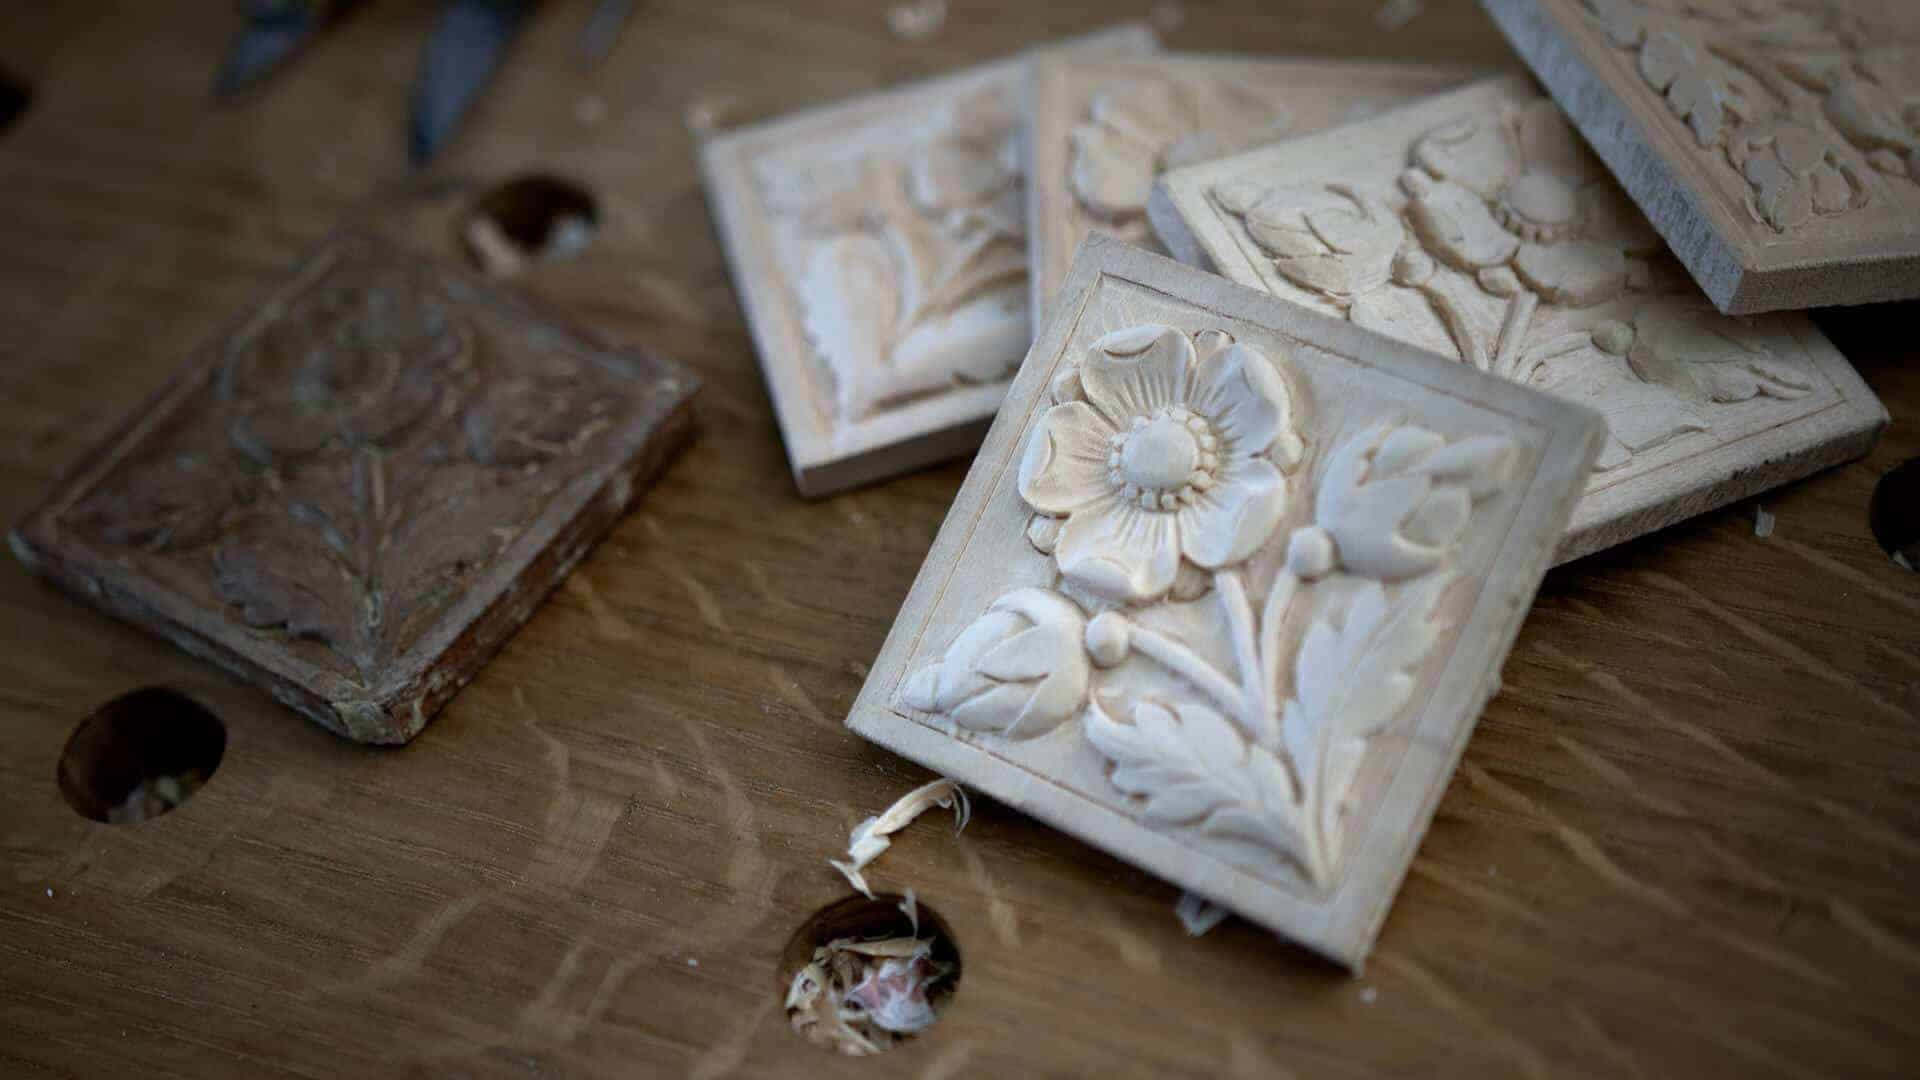 Woodcarving School with Classical Flair - Carving Flower Rosette- Corner Block - with Alexander Grabovetskiy - Woodcarver -@grabovetskiy #woodcavingschool